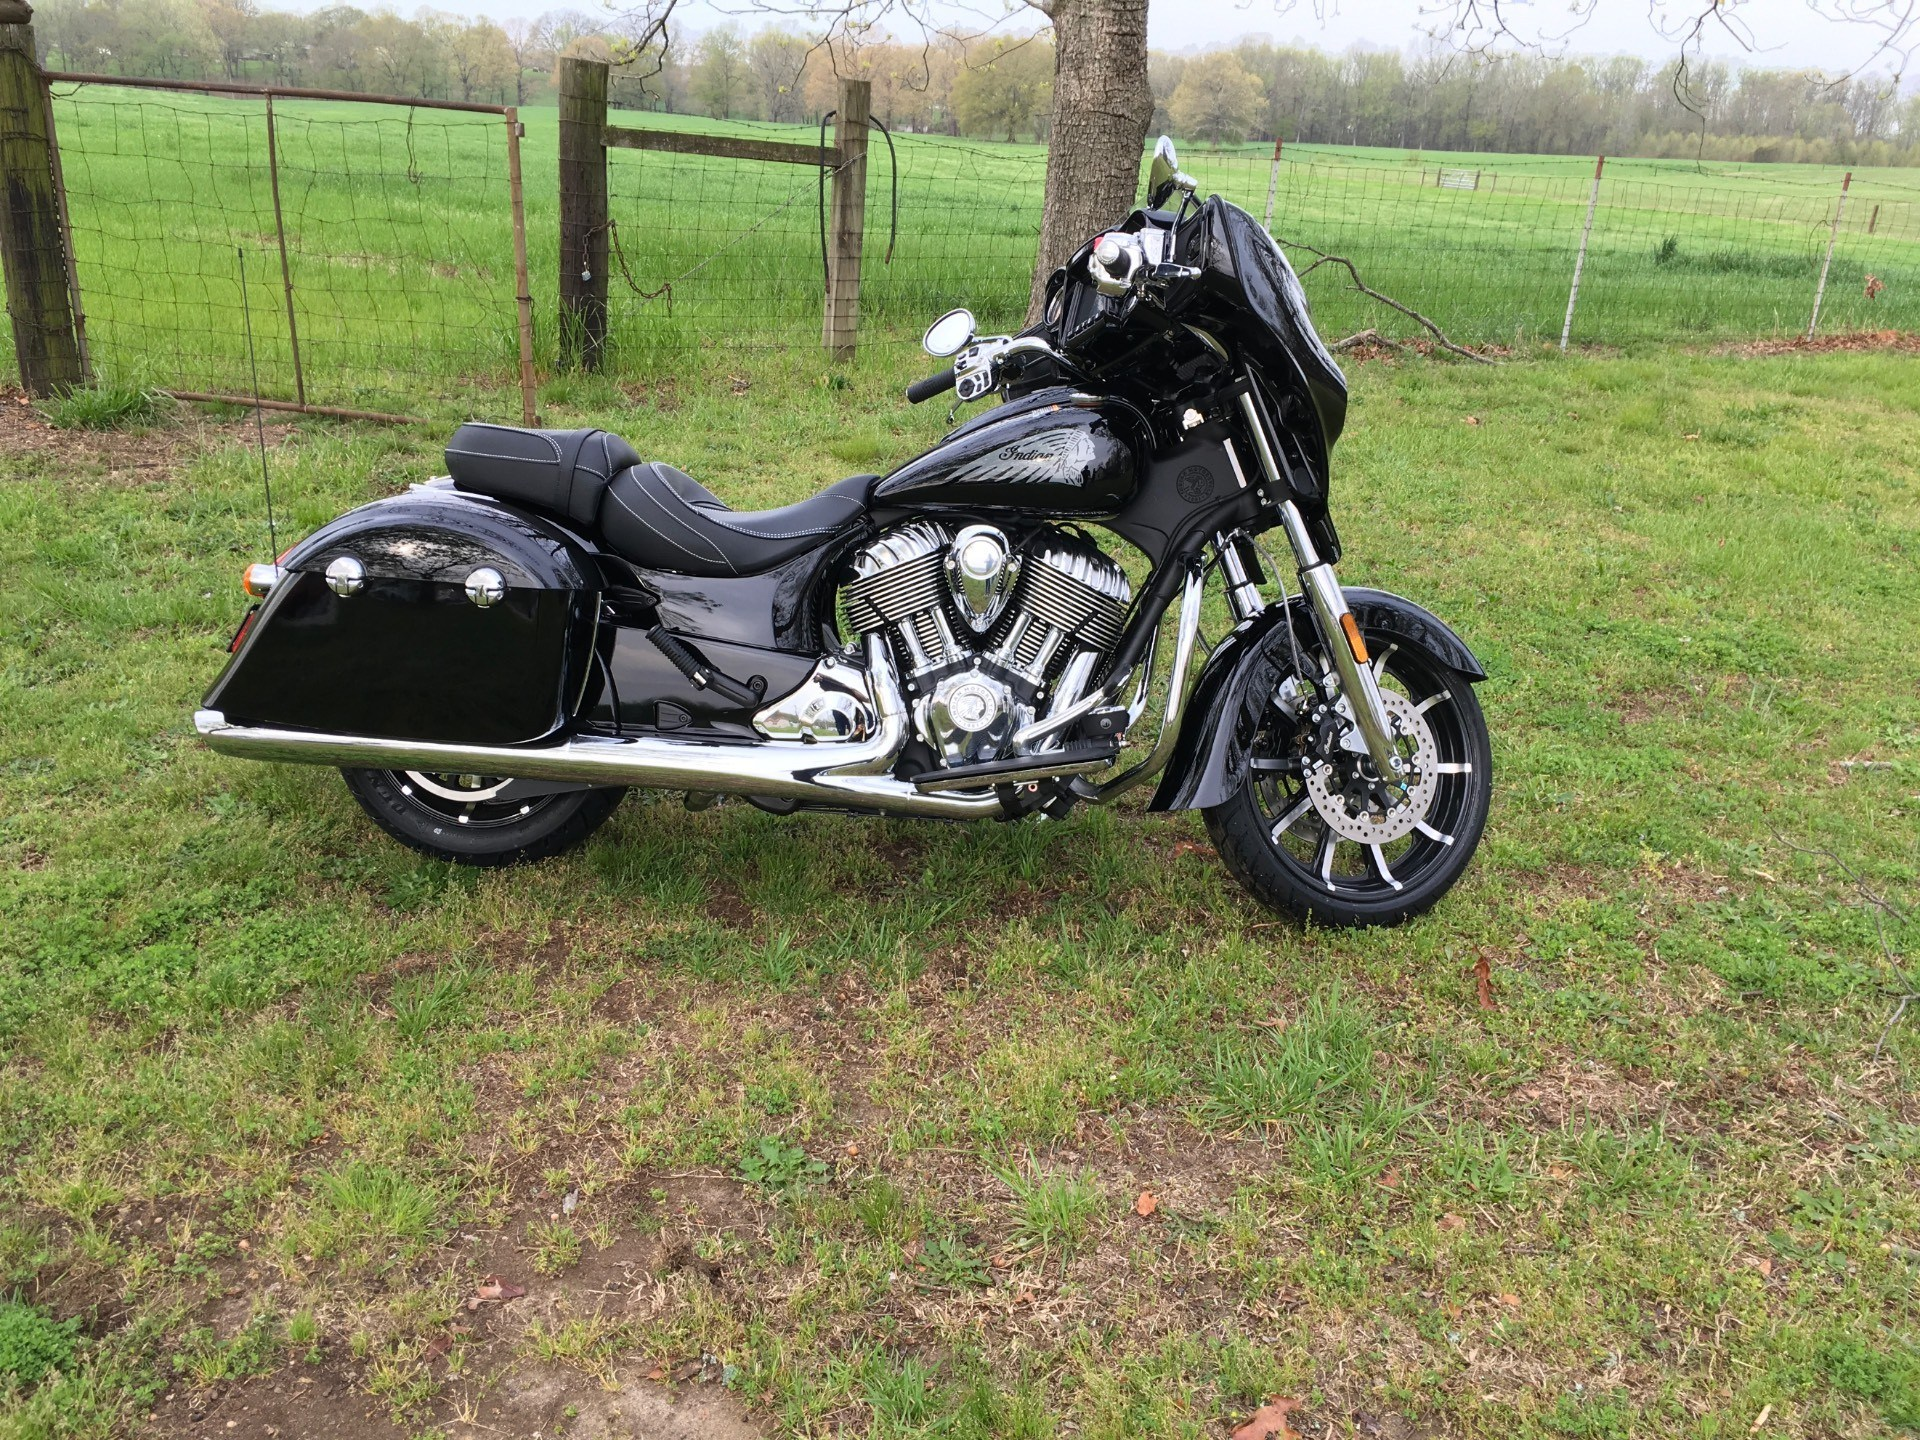 2017 Indian Chieftain Limited 3